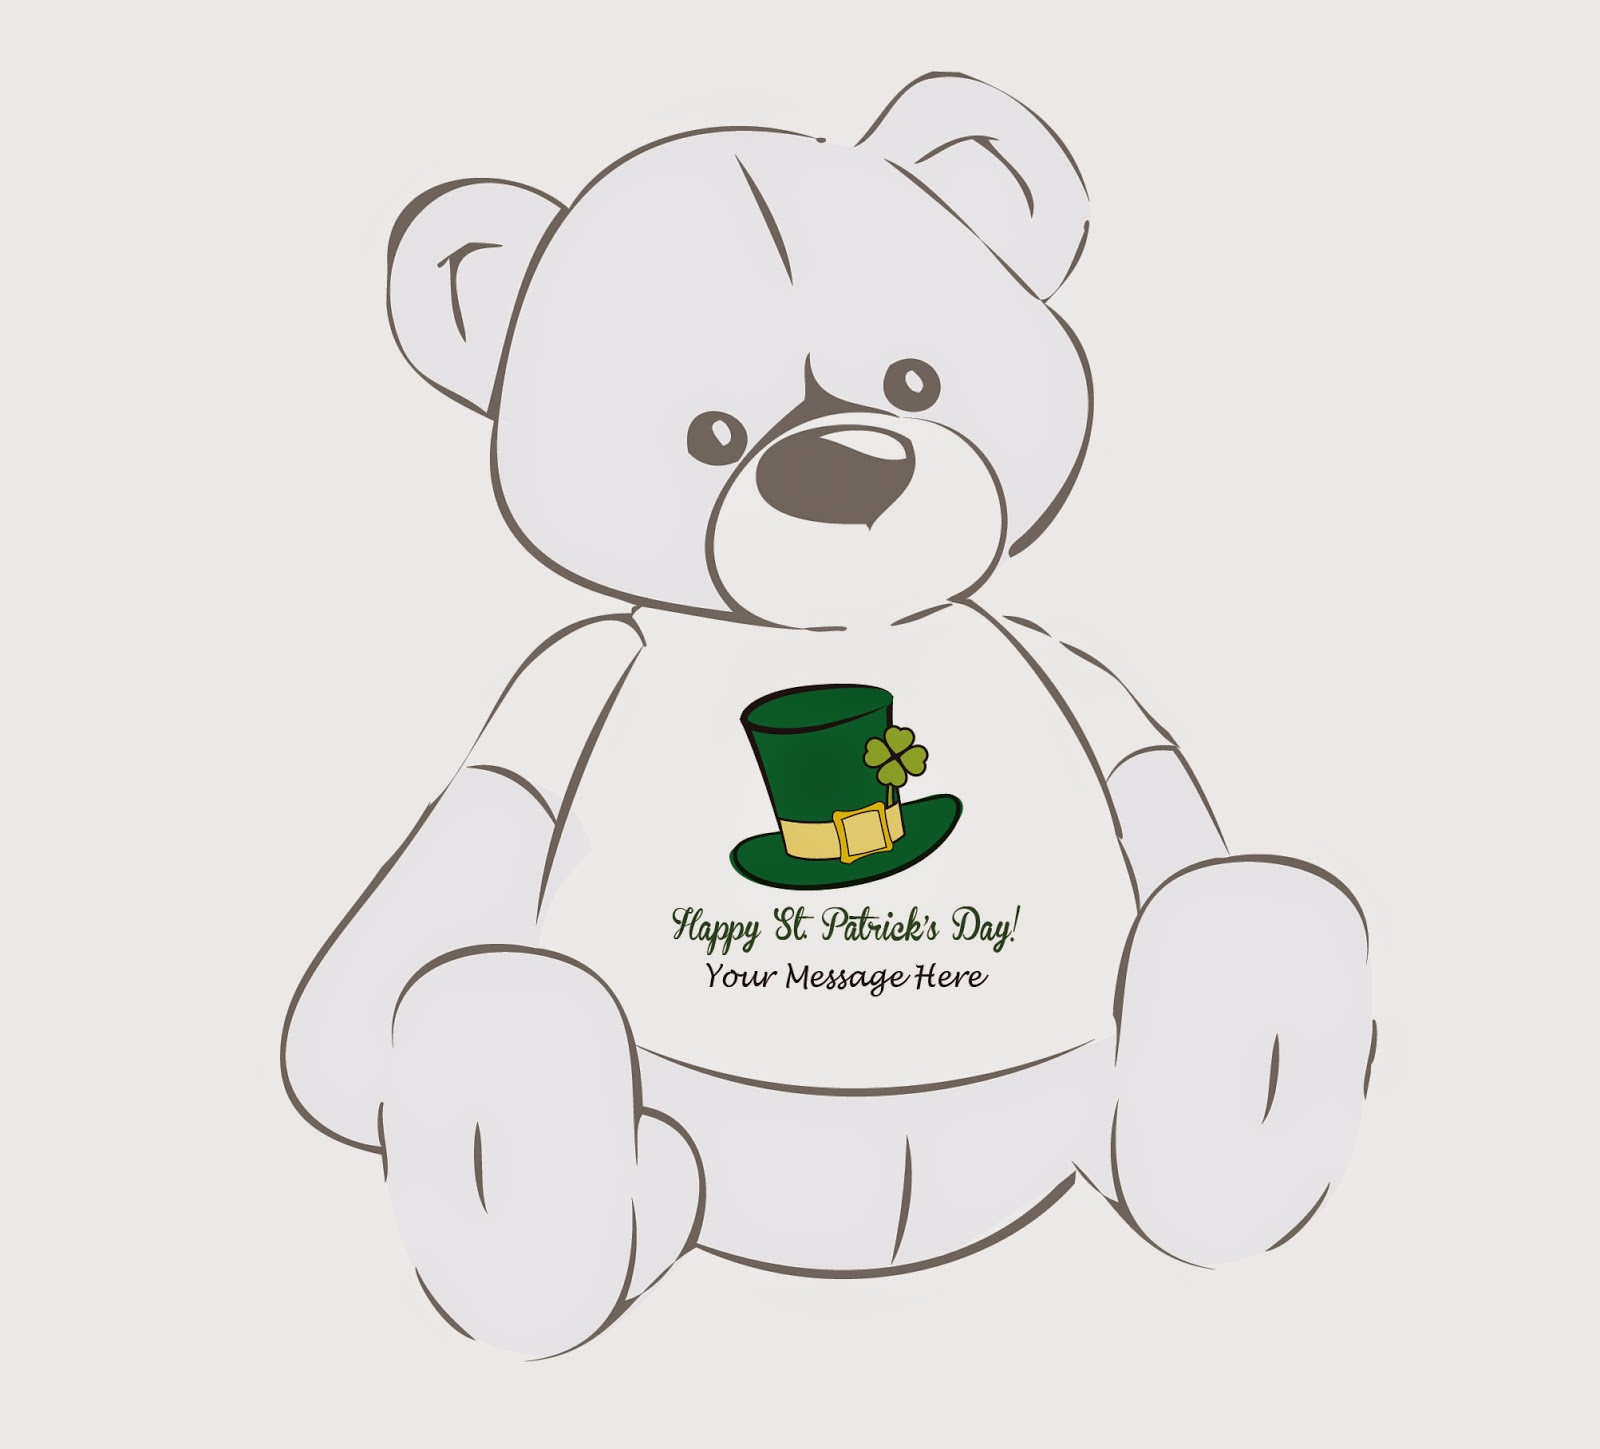 A personalized Giant Teddy bear for St. Patrick's Day